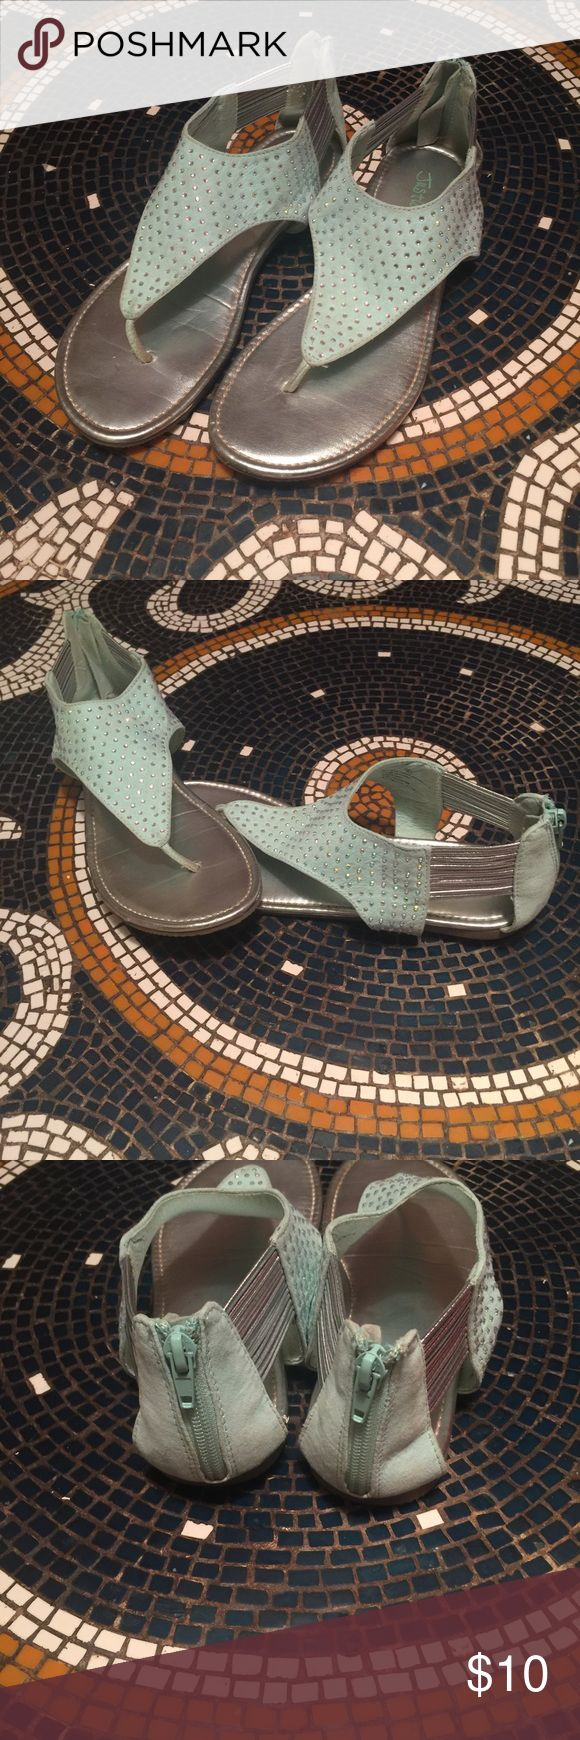 Womens sandals that zip up the back - Tiffany Blue Sandals Very Good Used Condition Women S Size 8 From Justice Have A